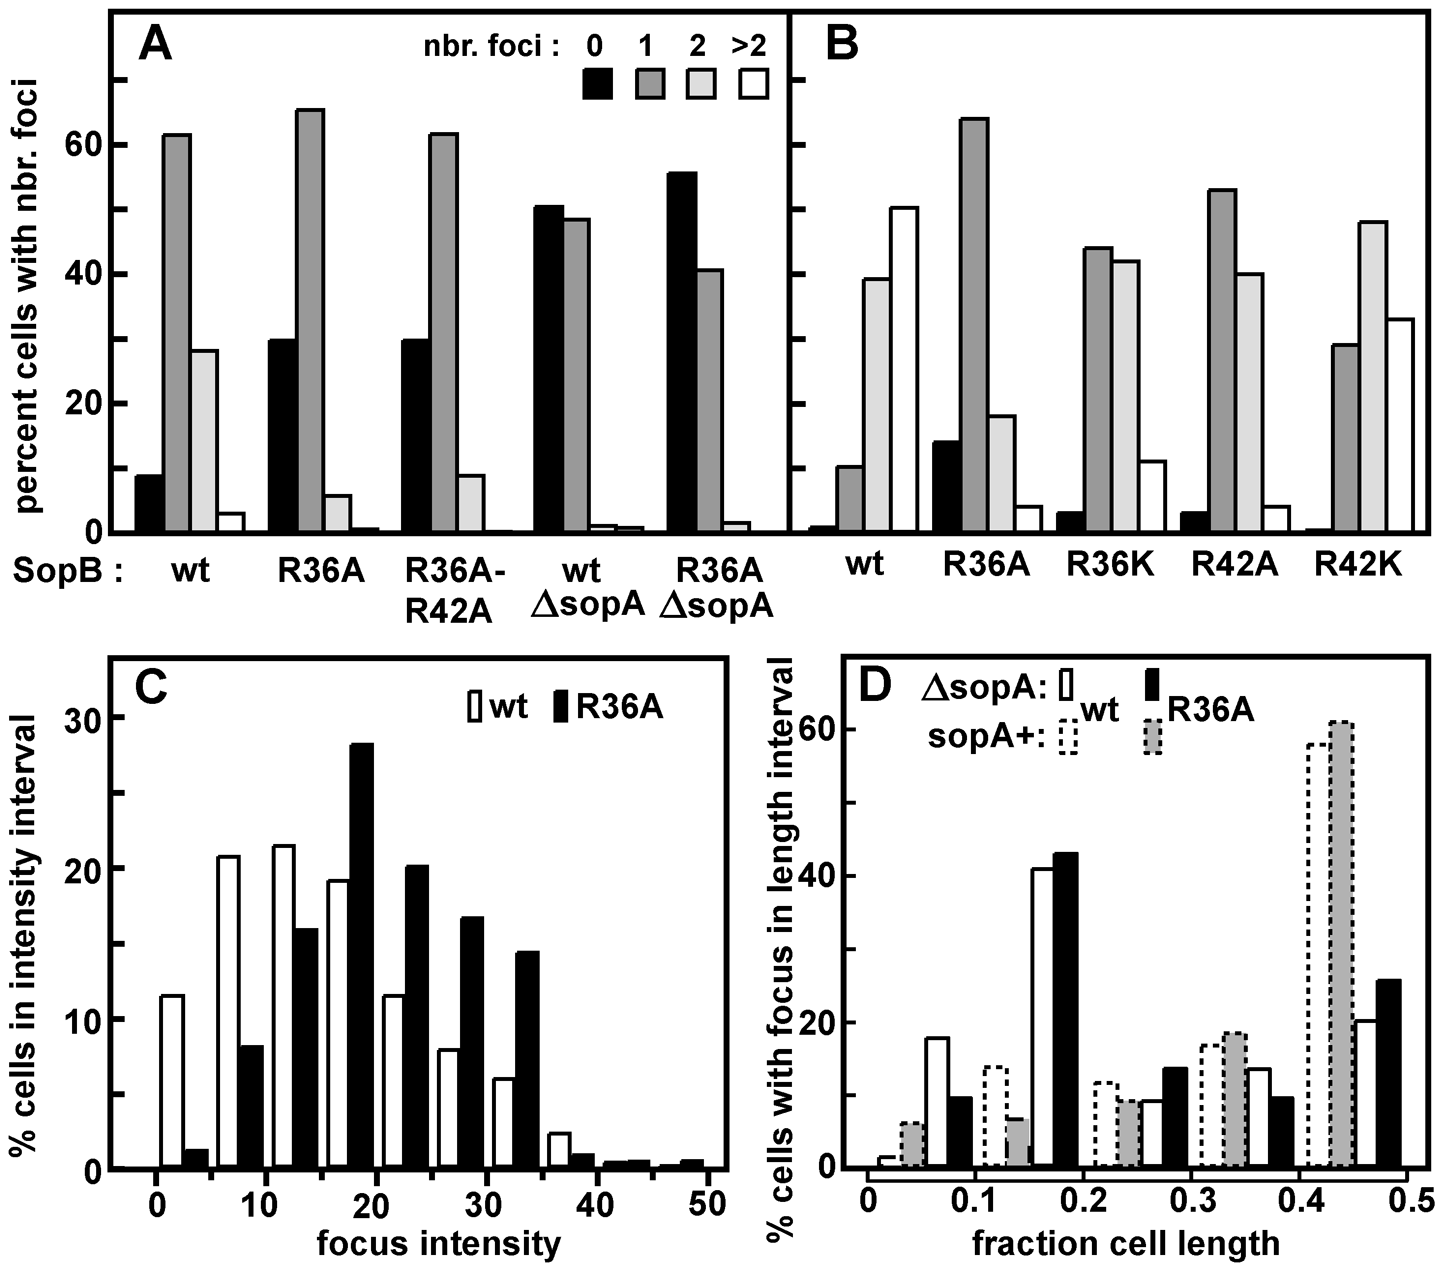 Effect of R36 and R42 mutations on mini-F clustering.